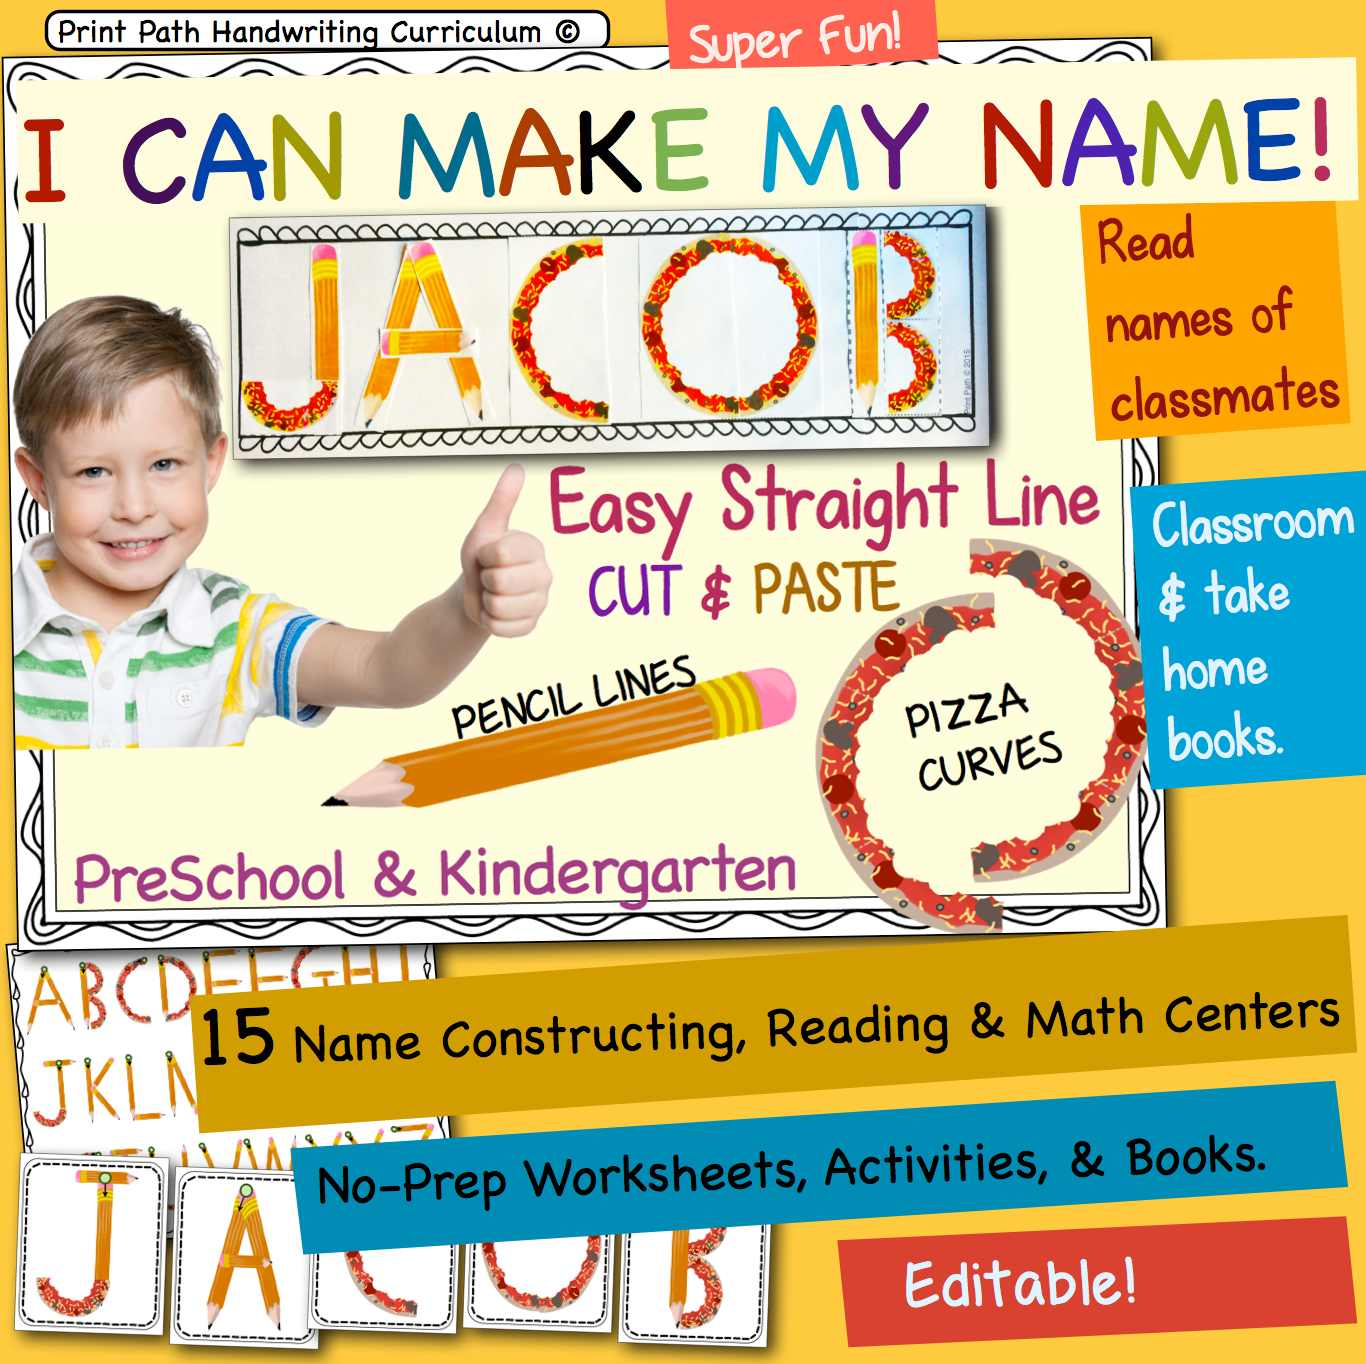 hight resolution of Capitals First! by Print Path: Teaching Young Children to Write Their Names